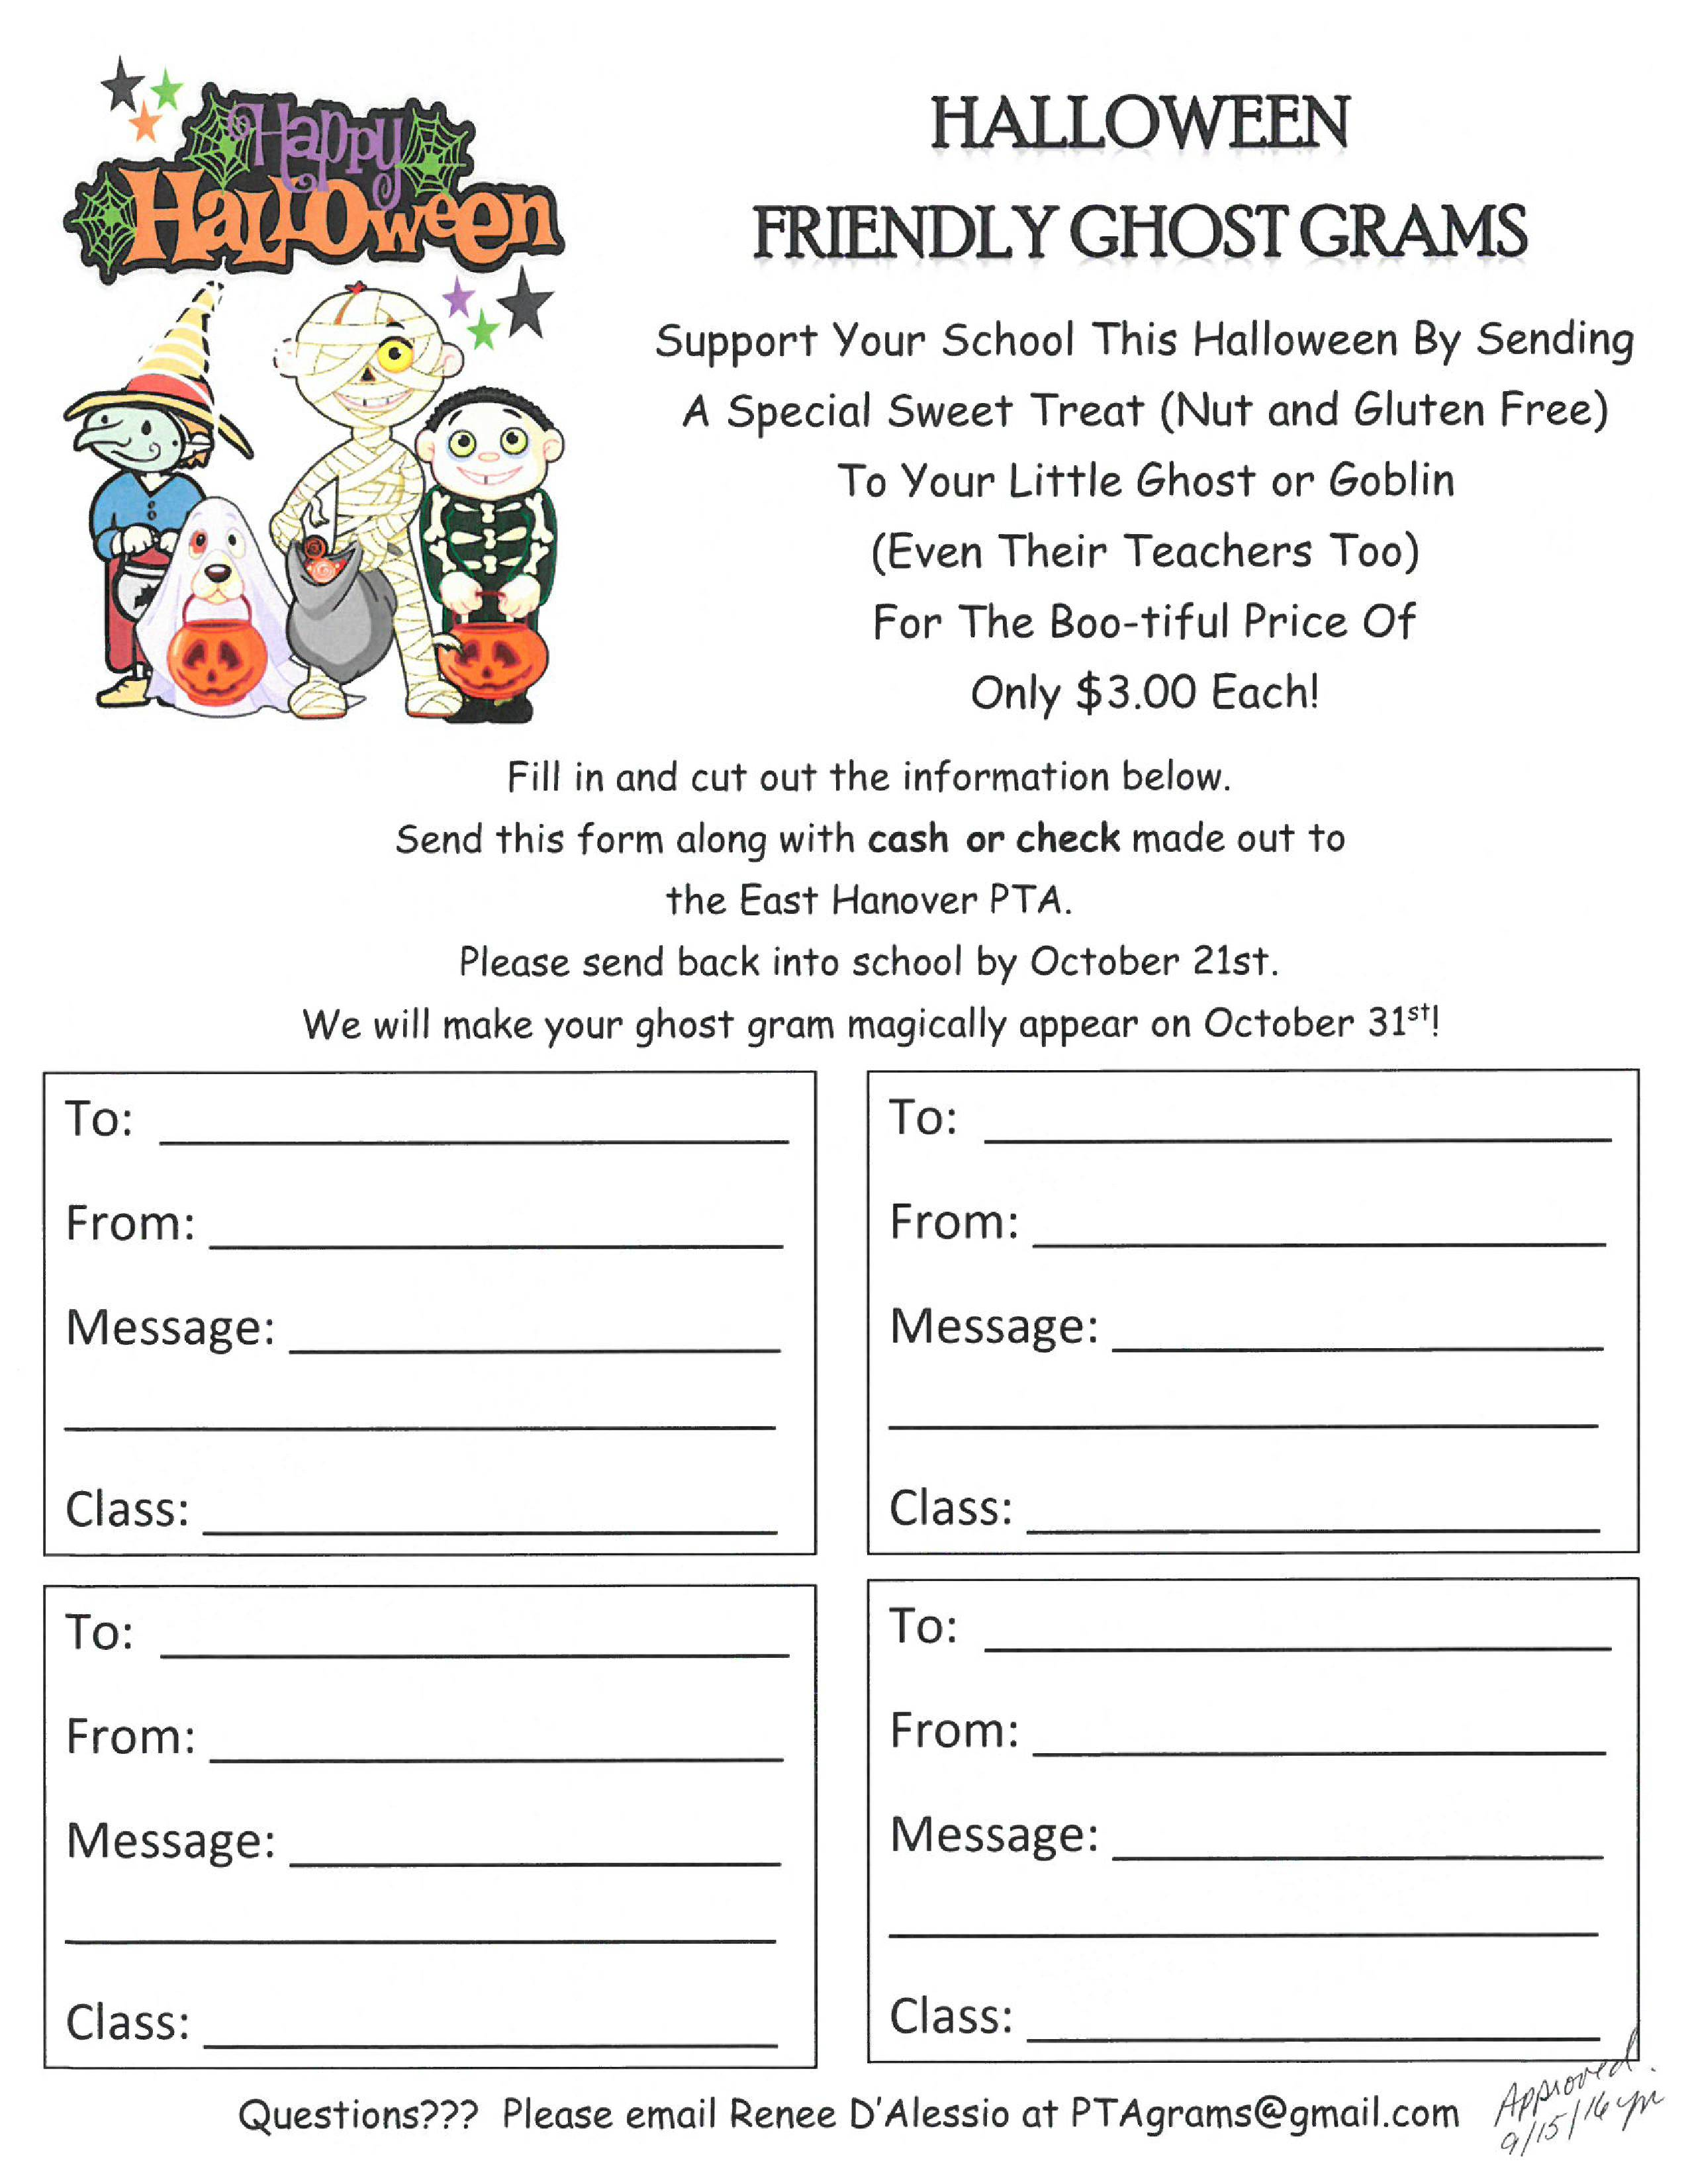 https://easthanoverpta.ourschoolpages.com/Image/2016-17%20images/PTA%20Halloween%20Candy%20Gram%20Flyer%20091516.jpg